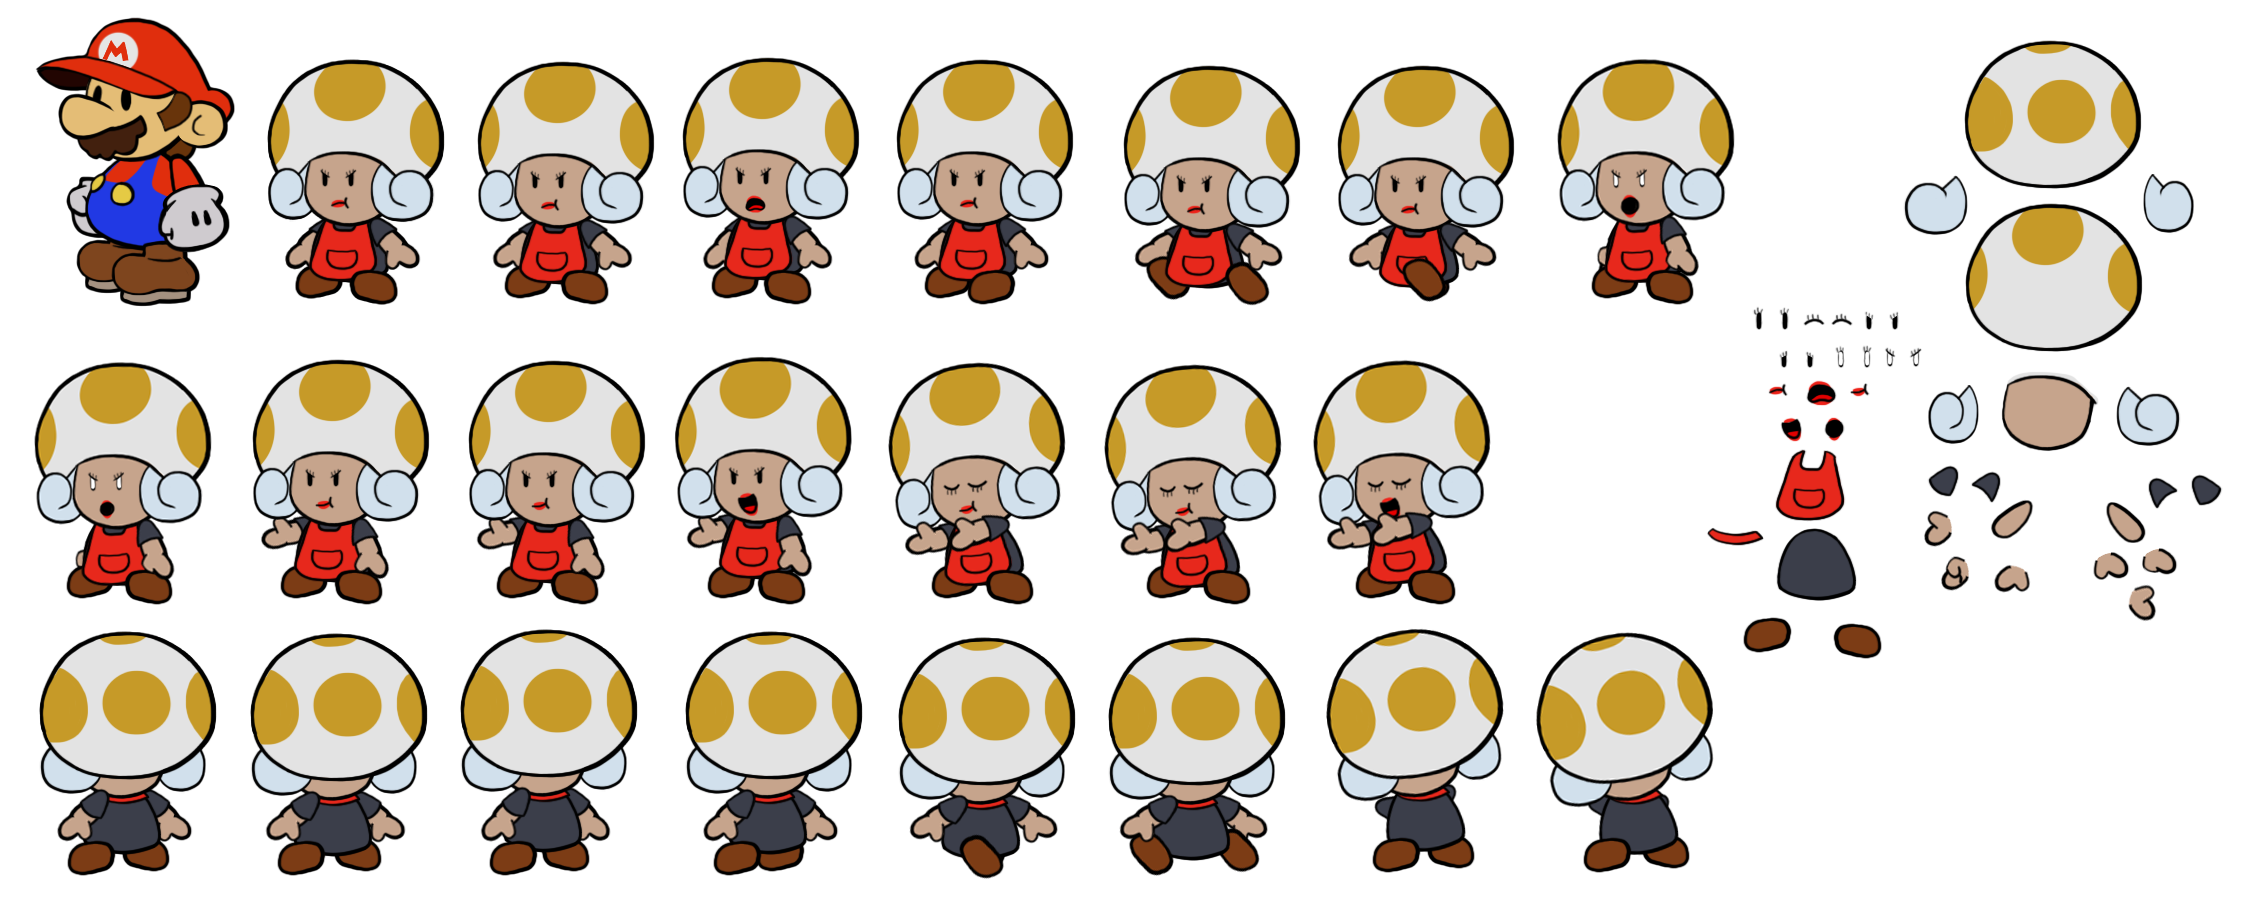 Zess T (Paper Mario Style)